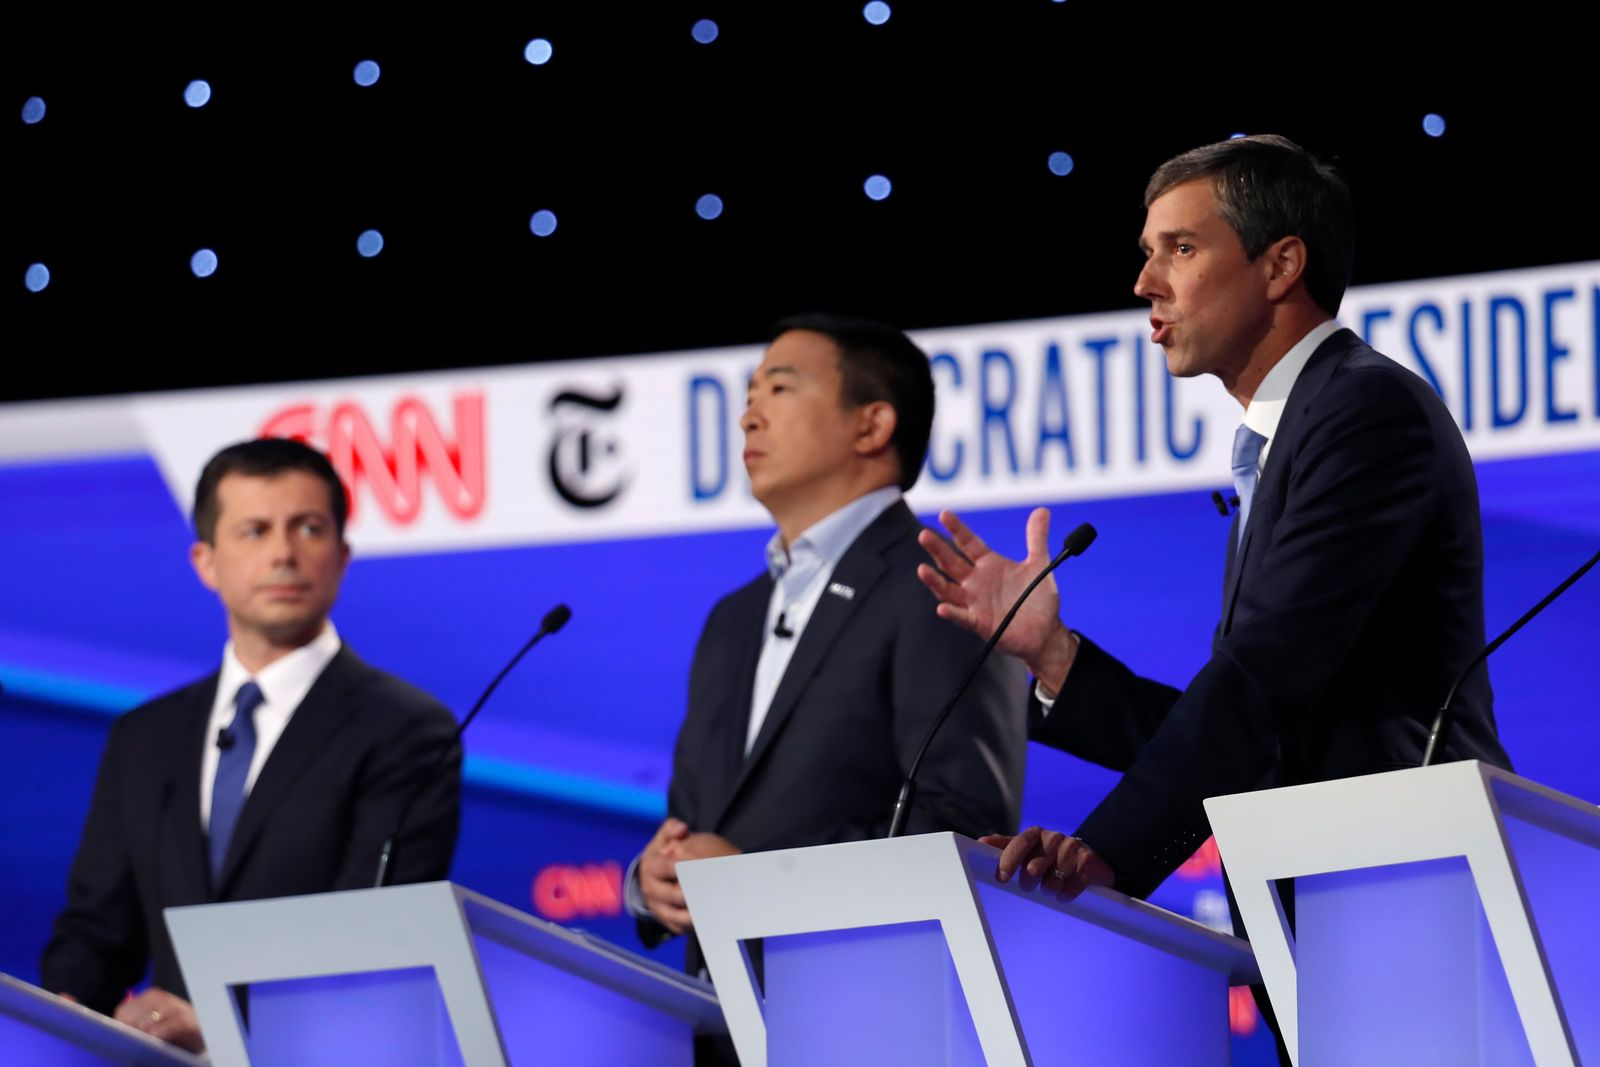 Democratic presidential candidate former Texas Rep. Beto O'Rourke, right, speaks as Democratic presidential candidate entrepreneur Andrew Yang, center and Democratic presidential candidate and South Bend Mayor Pete Buttigieg listen during a Democratic presidential primary debate hosted by CNN/New York Times at Otterbein University, Tuesday, Oct. 15, 2019, in Westerville, Ohio. (AP Photo/John Minchillo)